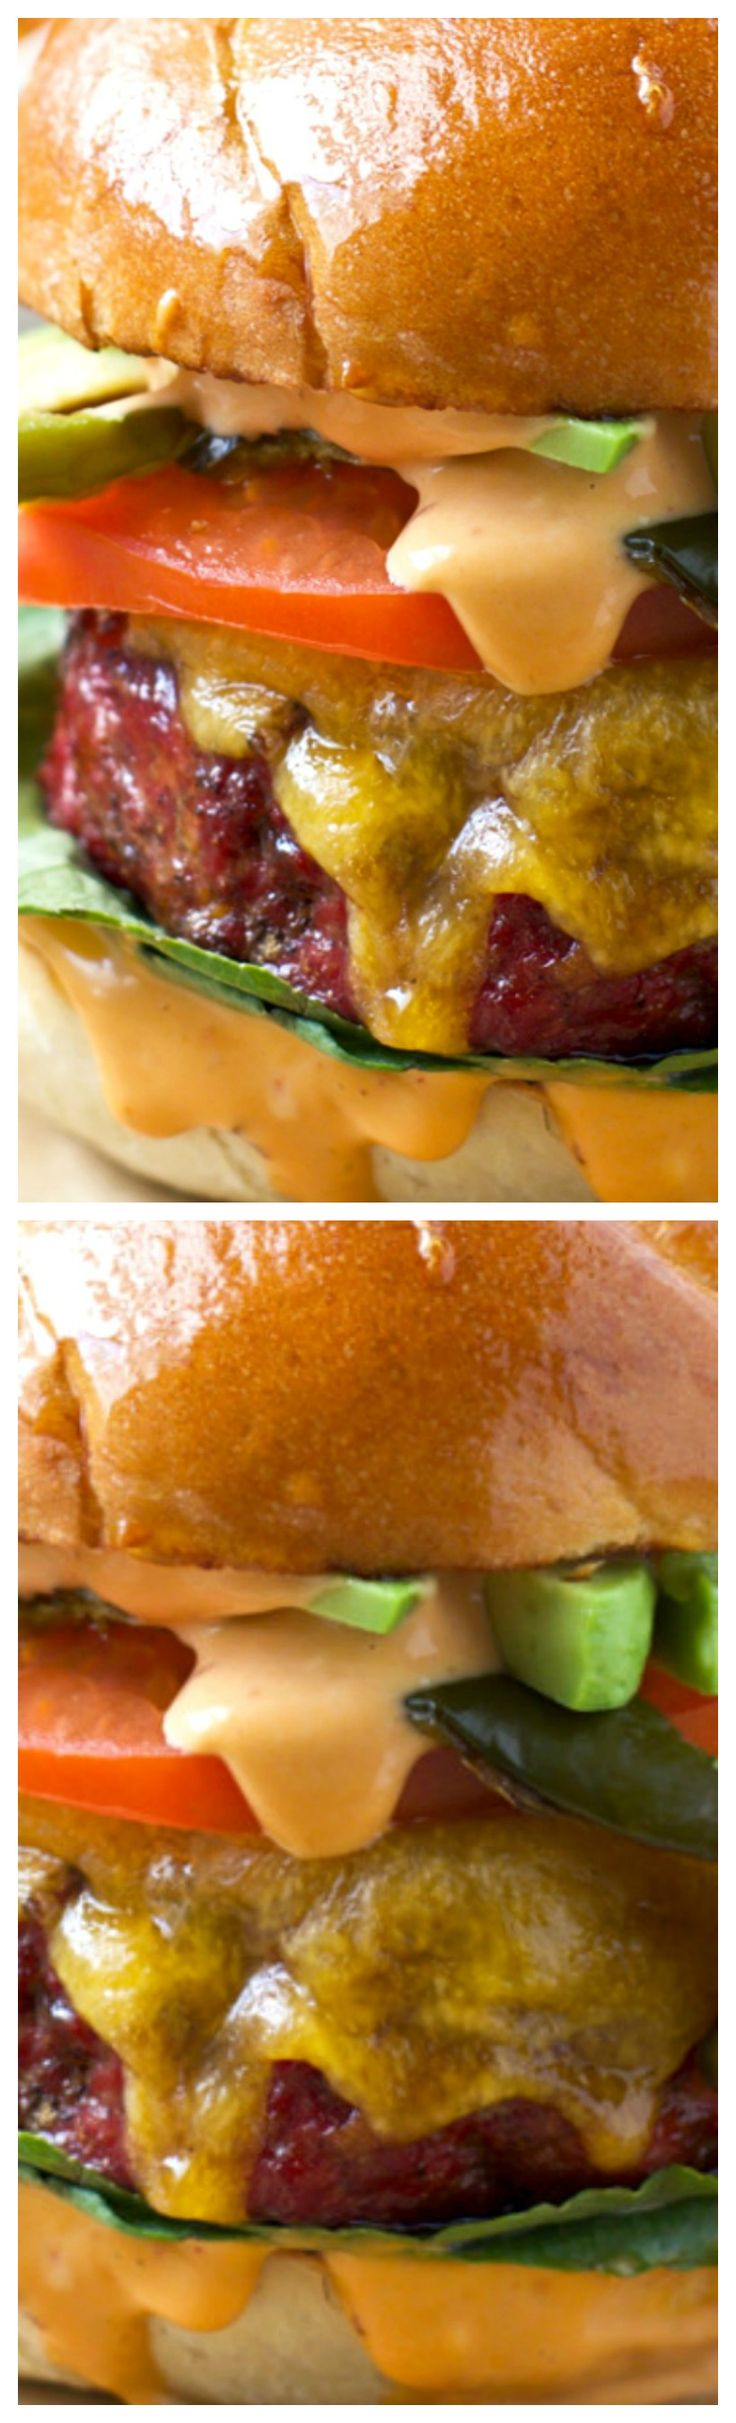 Smoked Burgers with Mexican Chorizo and Smoked Poblano Peppers ~ How to smoke burgers with incredible smoky flavor and moisture with the perfect char on the outside. Plus a recipe for Smoked Mexican Burgers with Chorizo and Smoked Poblanos.